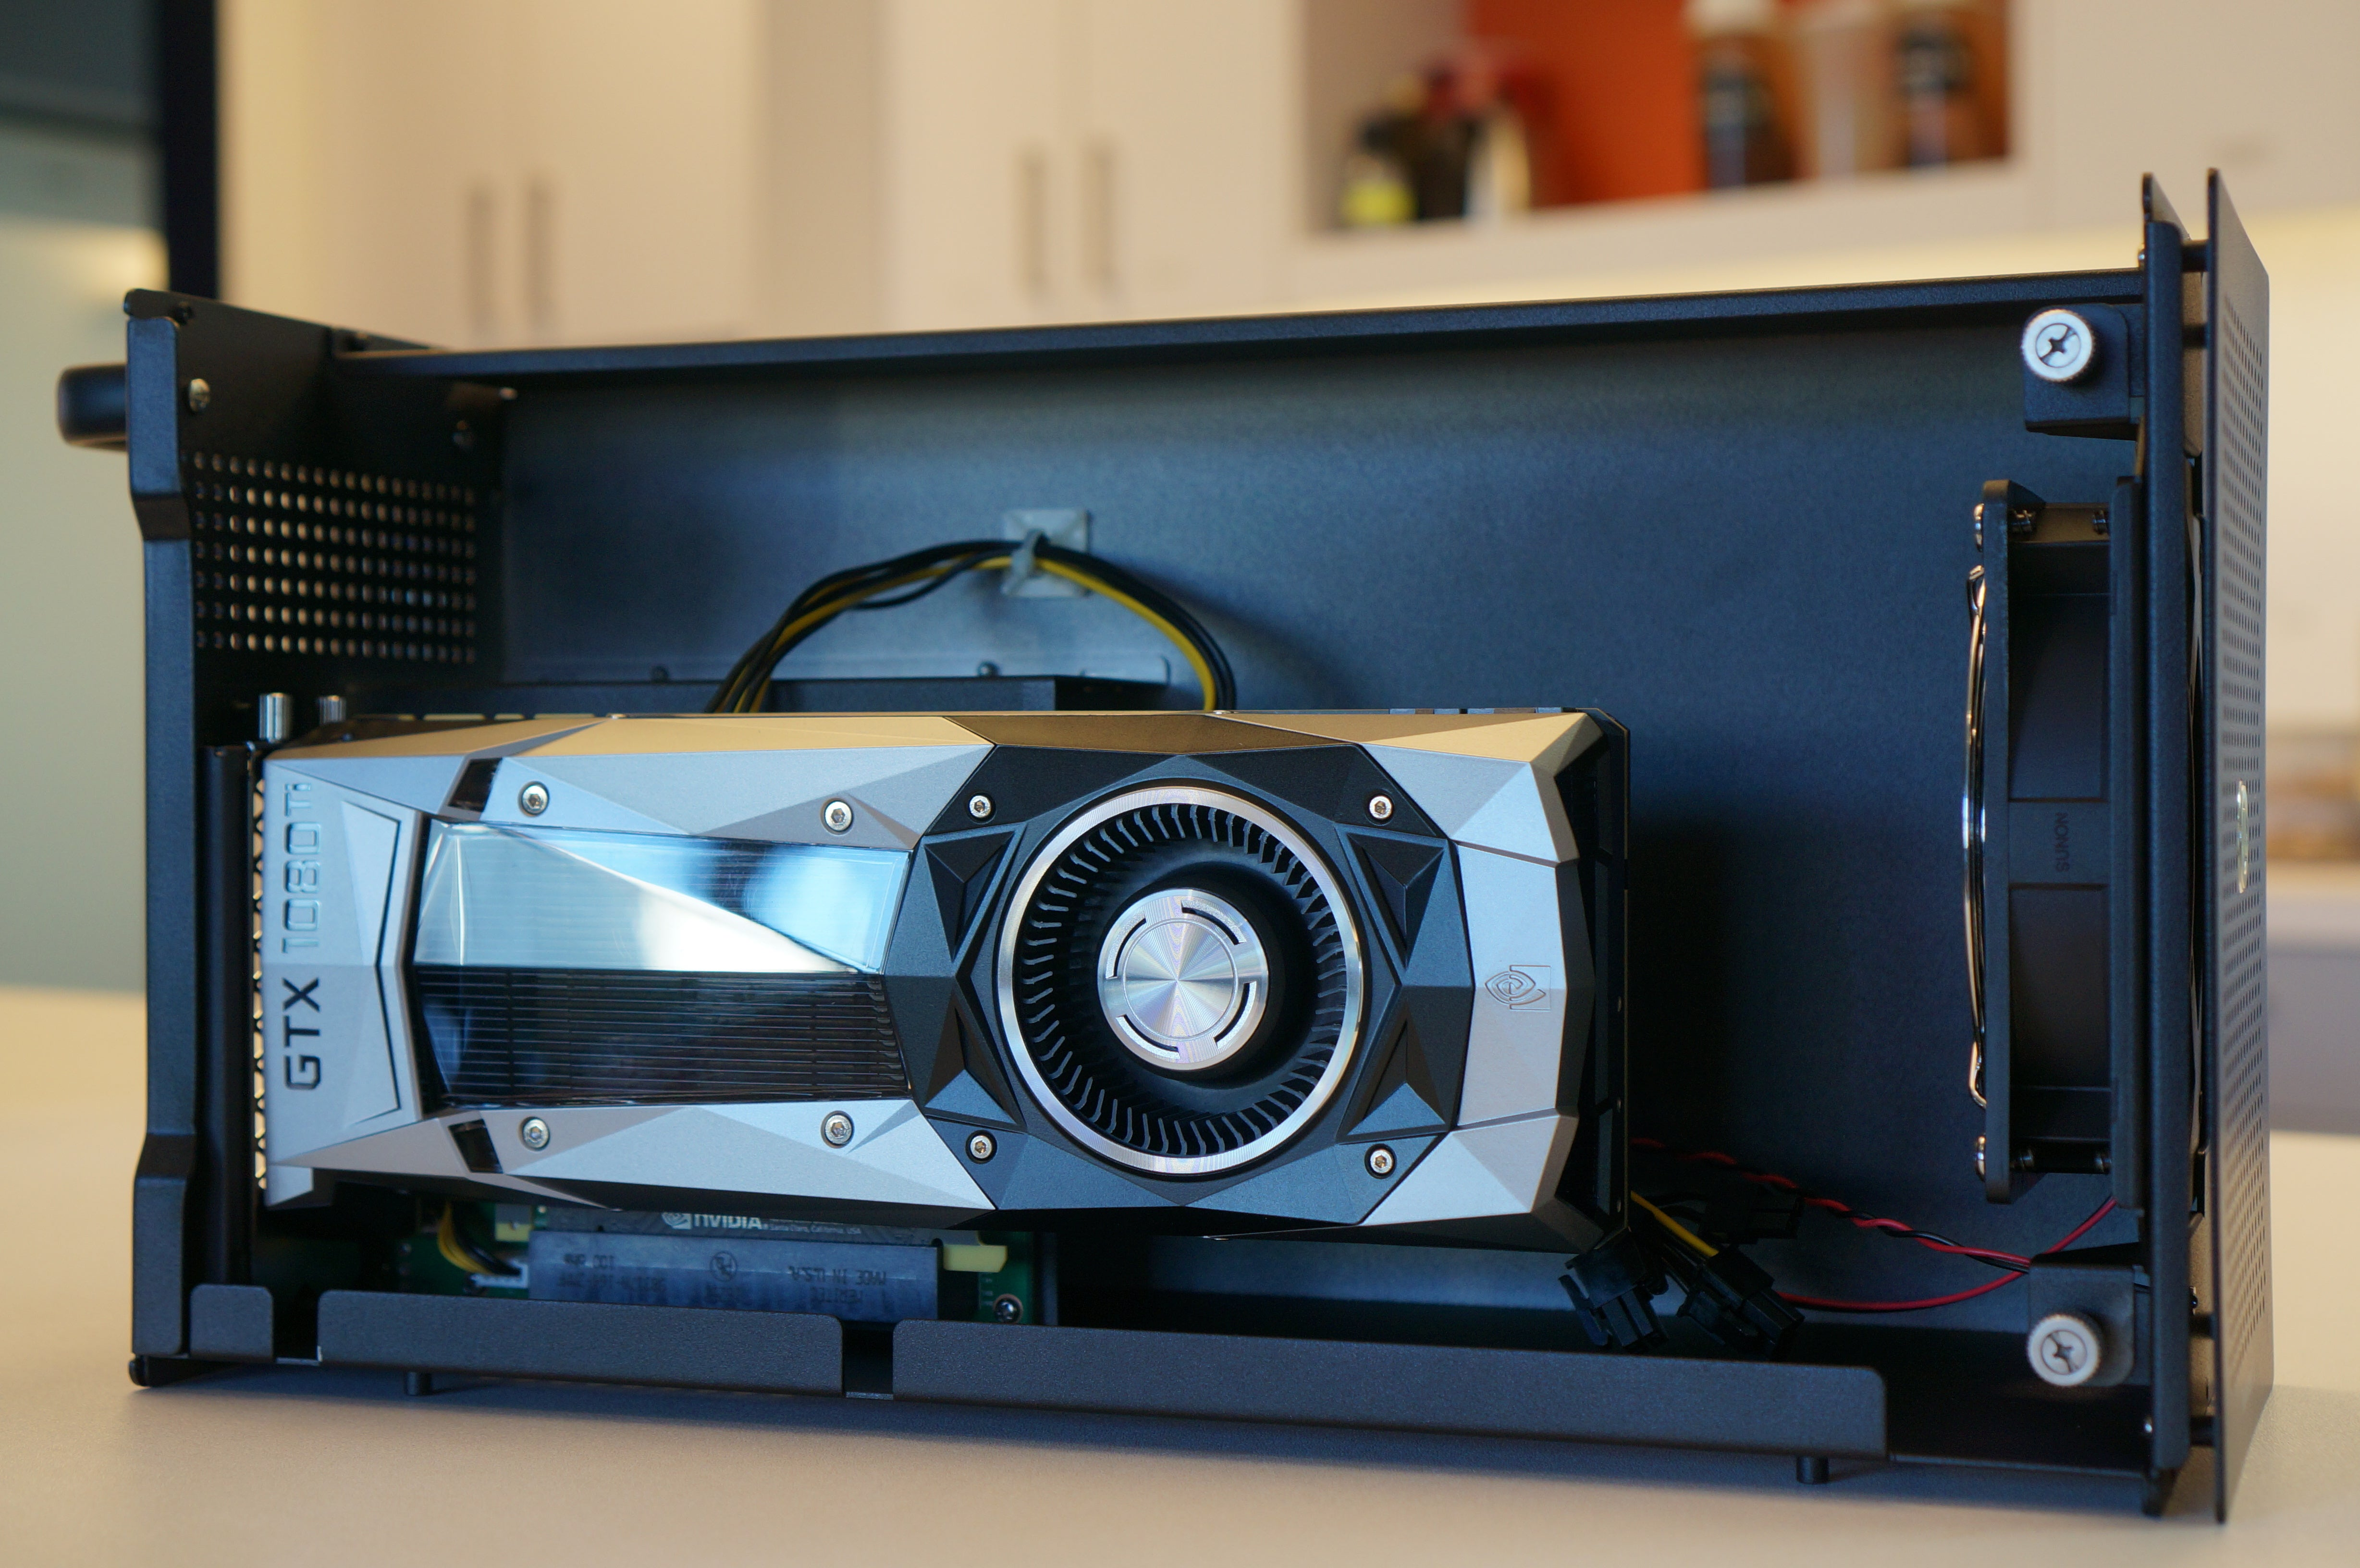 Want cheap external graphics on your laptop? Consider Akitio's Node